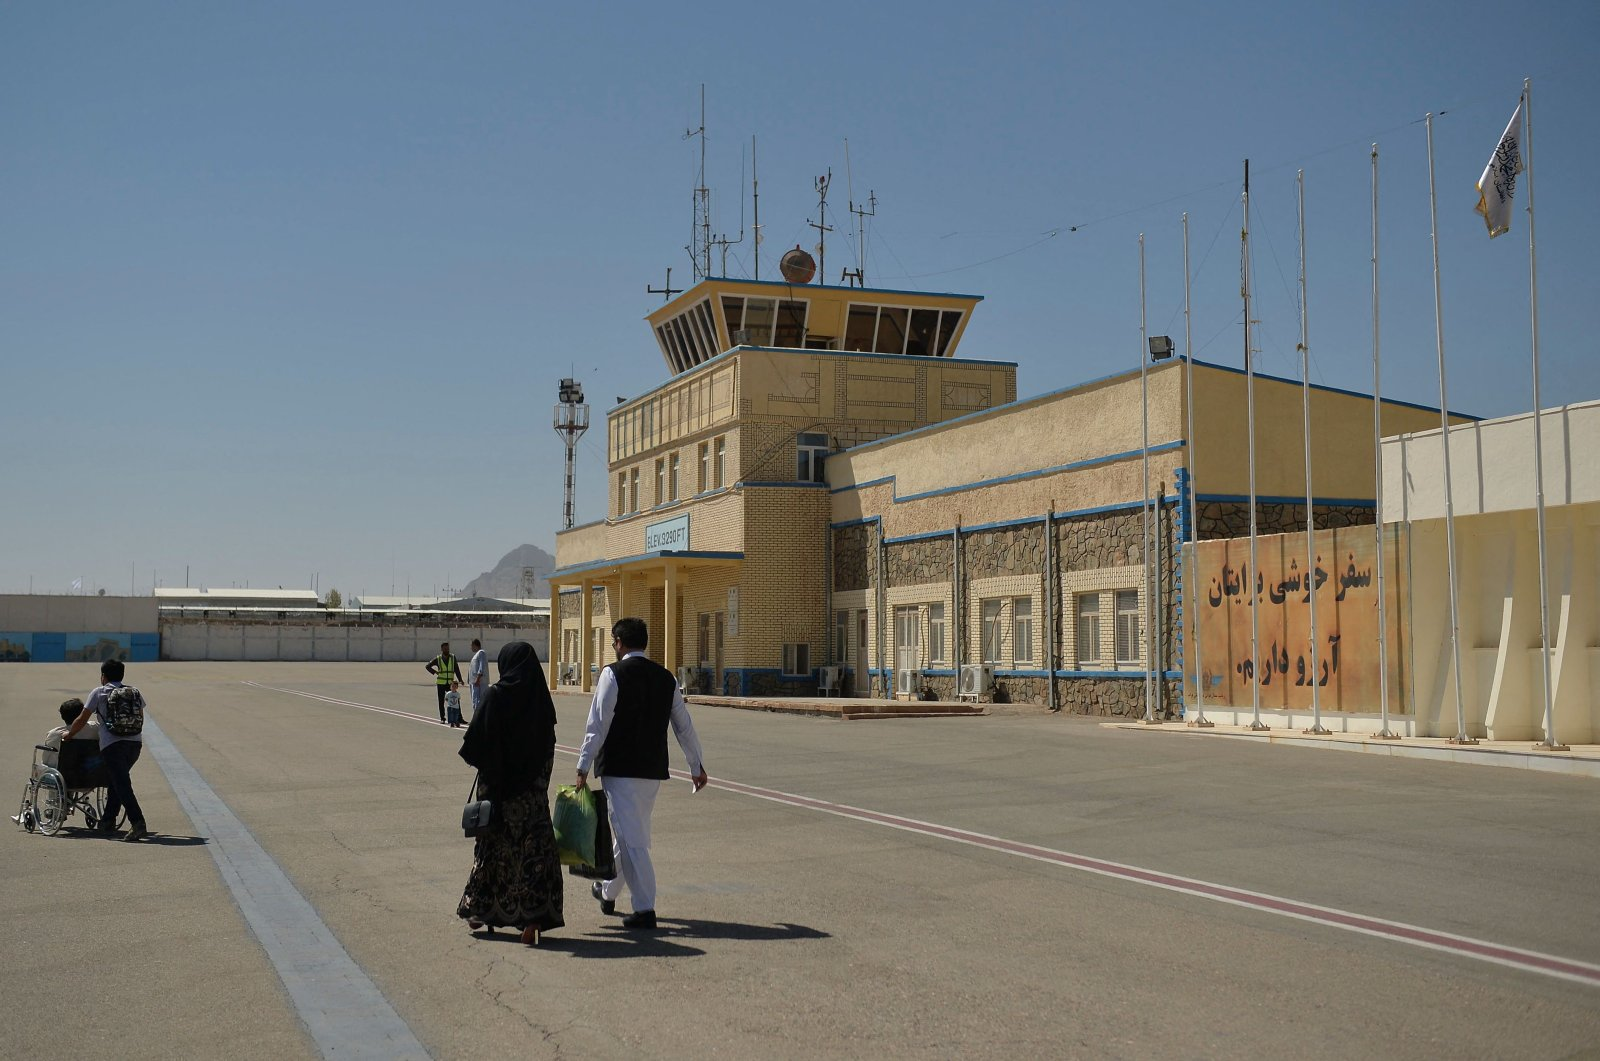 Passengers walk on the tarmac to board a commercial aircraft bound for Kabul at Herat airport, Afghanistan, Sept. 22, 2021. (AFP Photo)